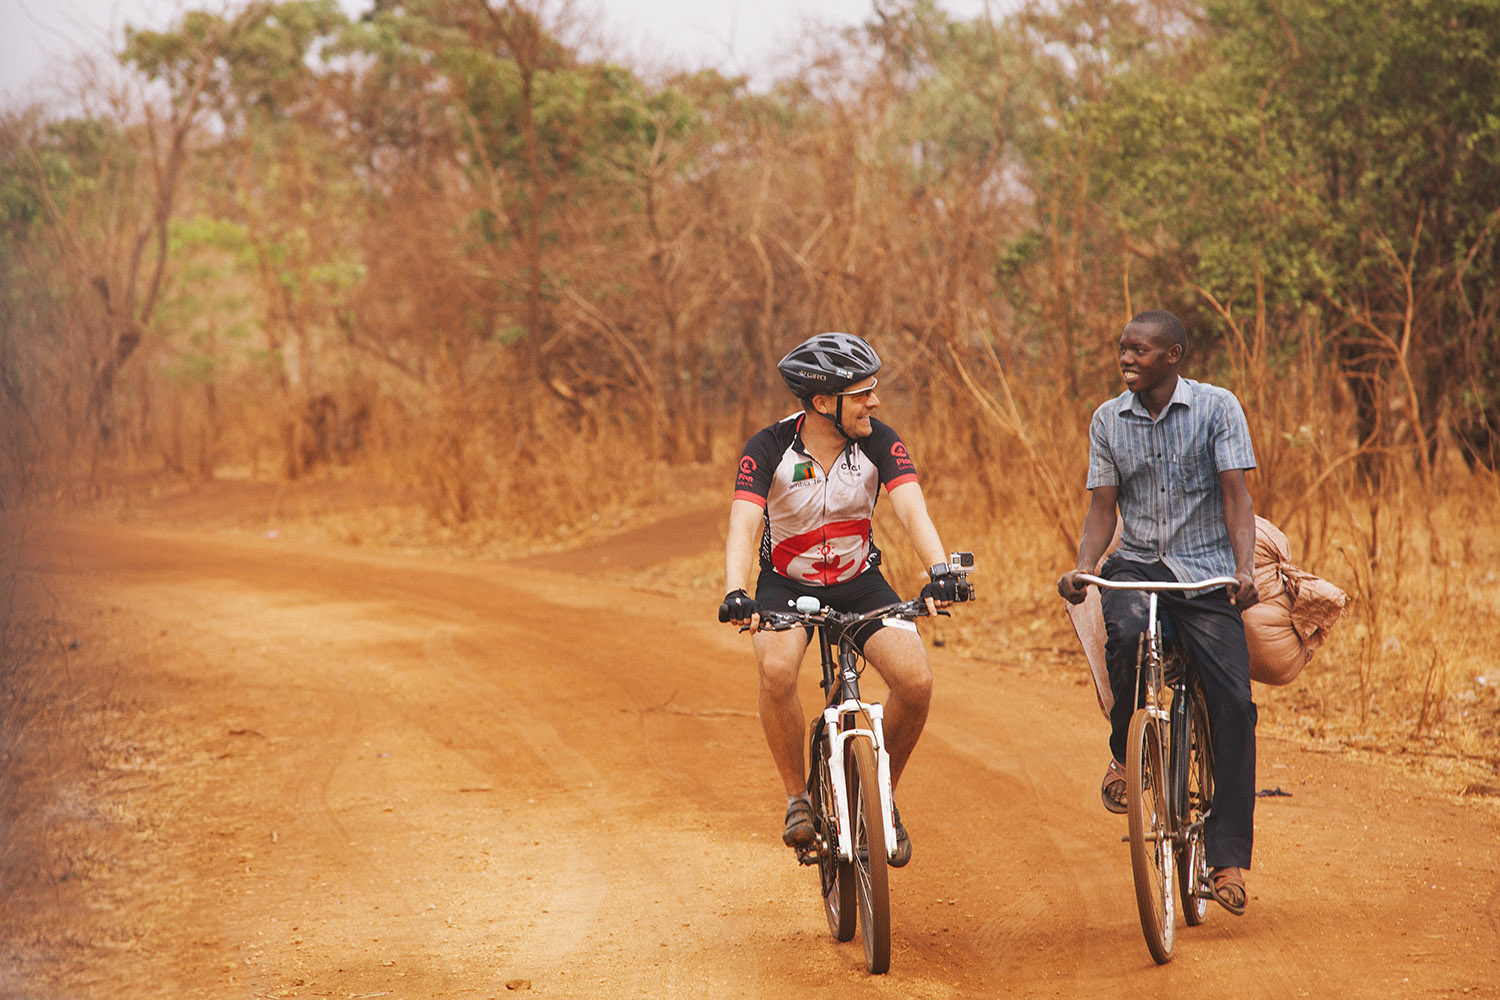 cycle for plan, cycle for plan zambia, zambia, cycle, plan nederland, plan zambia, 600 km in 6 dagen, kindhuwelijken,